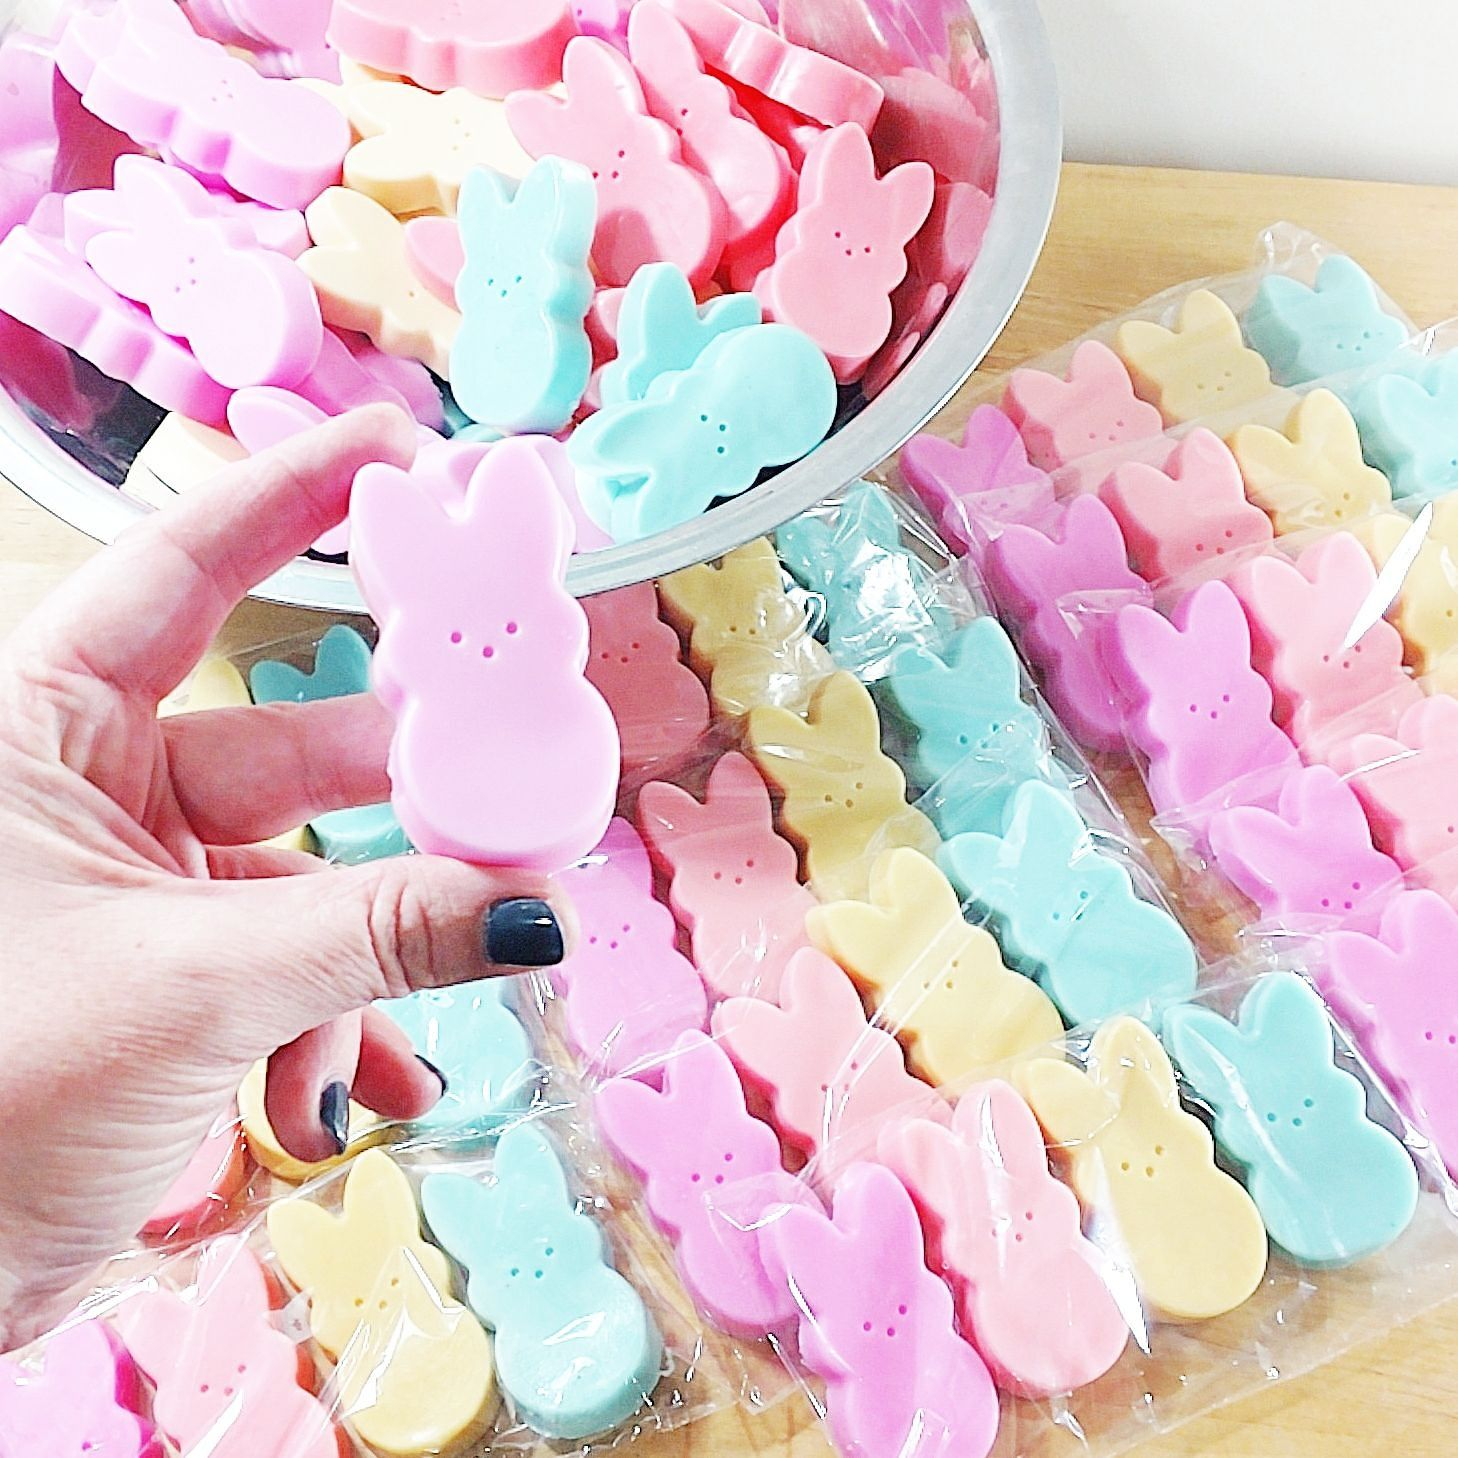 Easter gift gift for her funny gift gift for her best friend check out these adorable handmade soaps for your best friend peeps negle Images